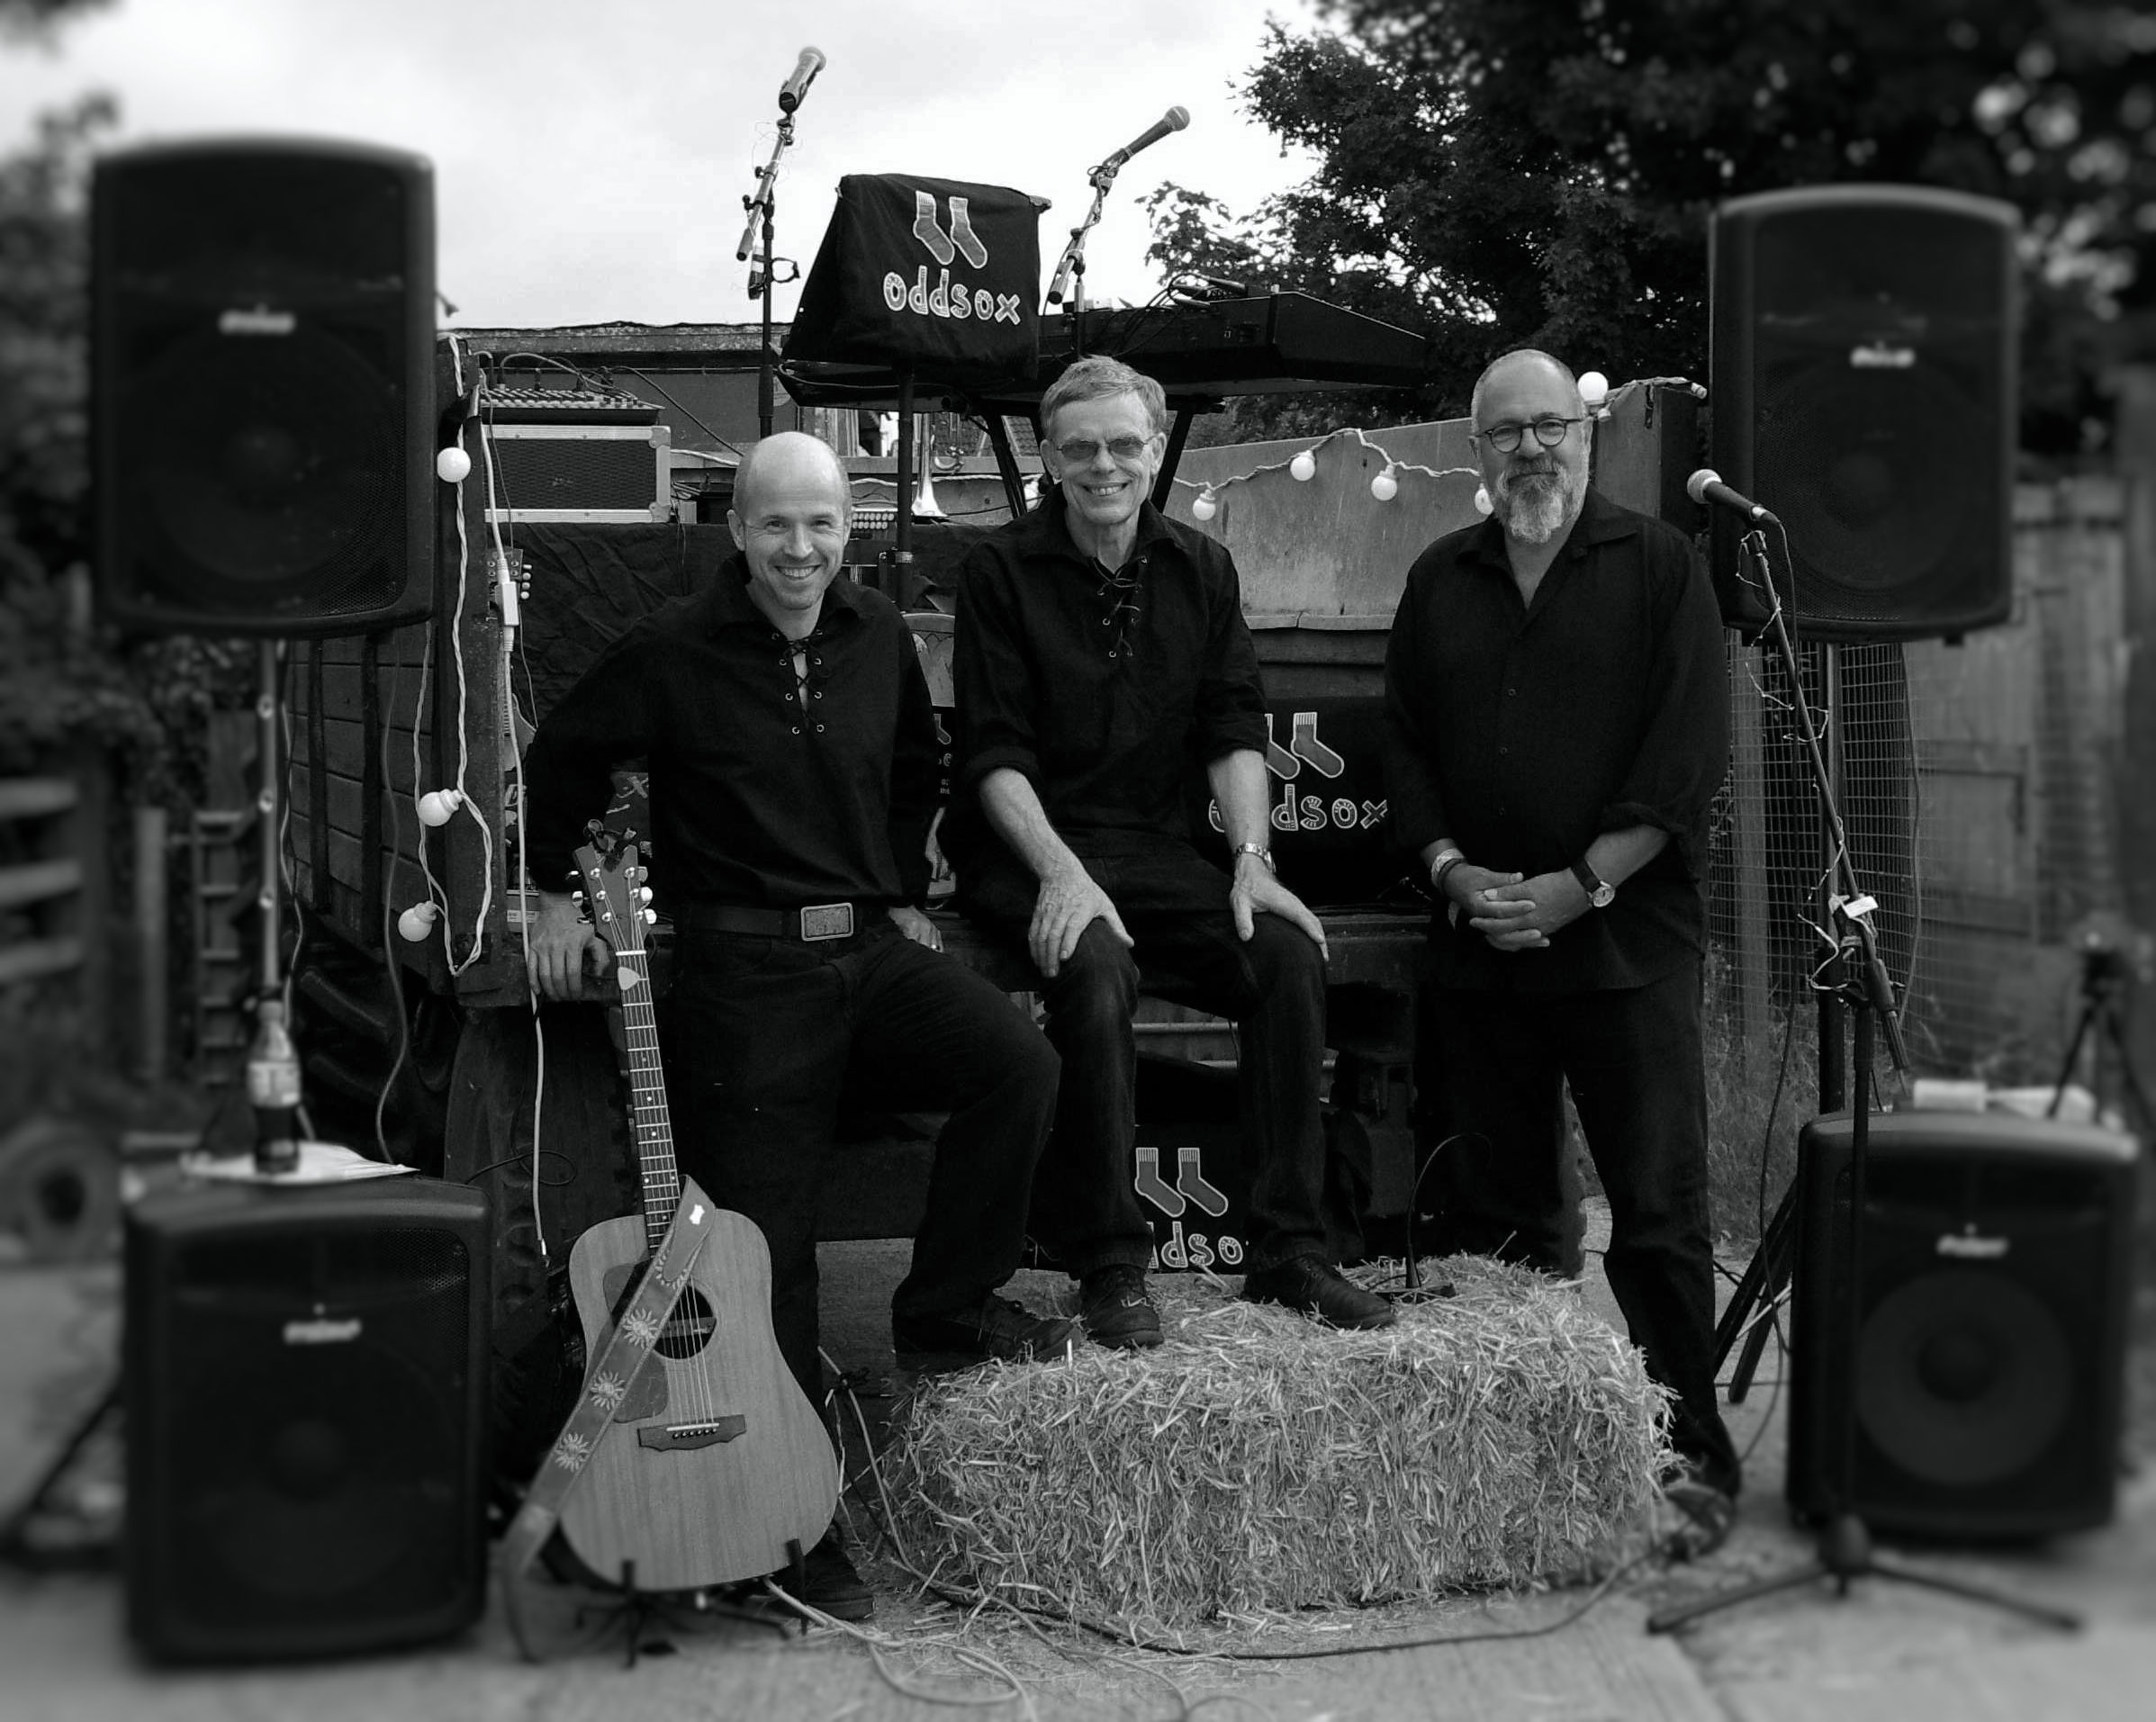 Left to right: Simon Ambrose  (Drums),  Nigel Hammond  (Piano trumpet, percussion, and backing vocals), Joe Boland  (Melodian, Fiddle, Mandolin and Vocals)